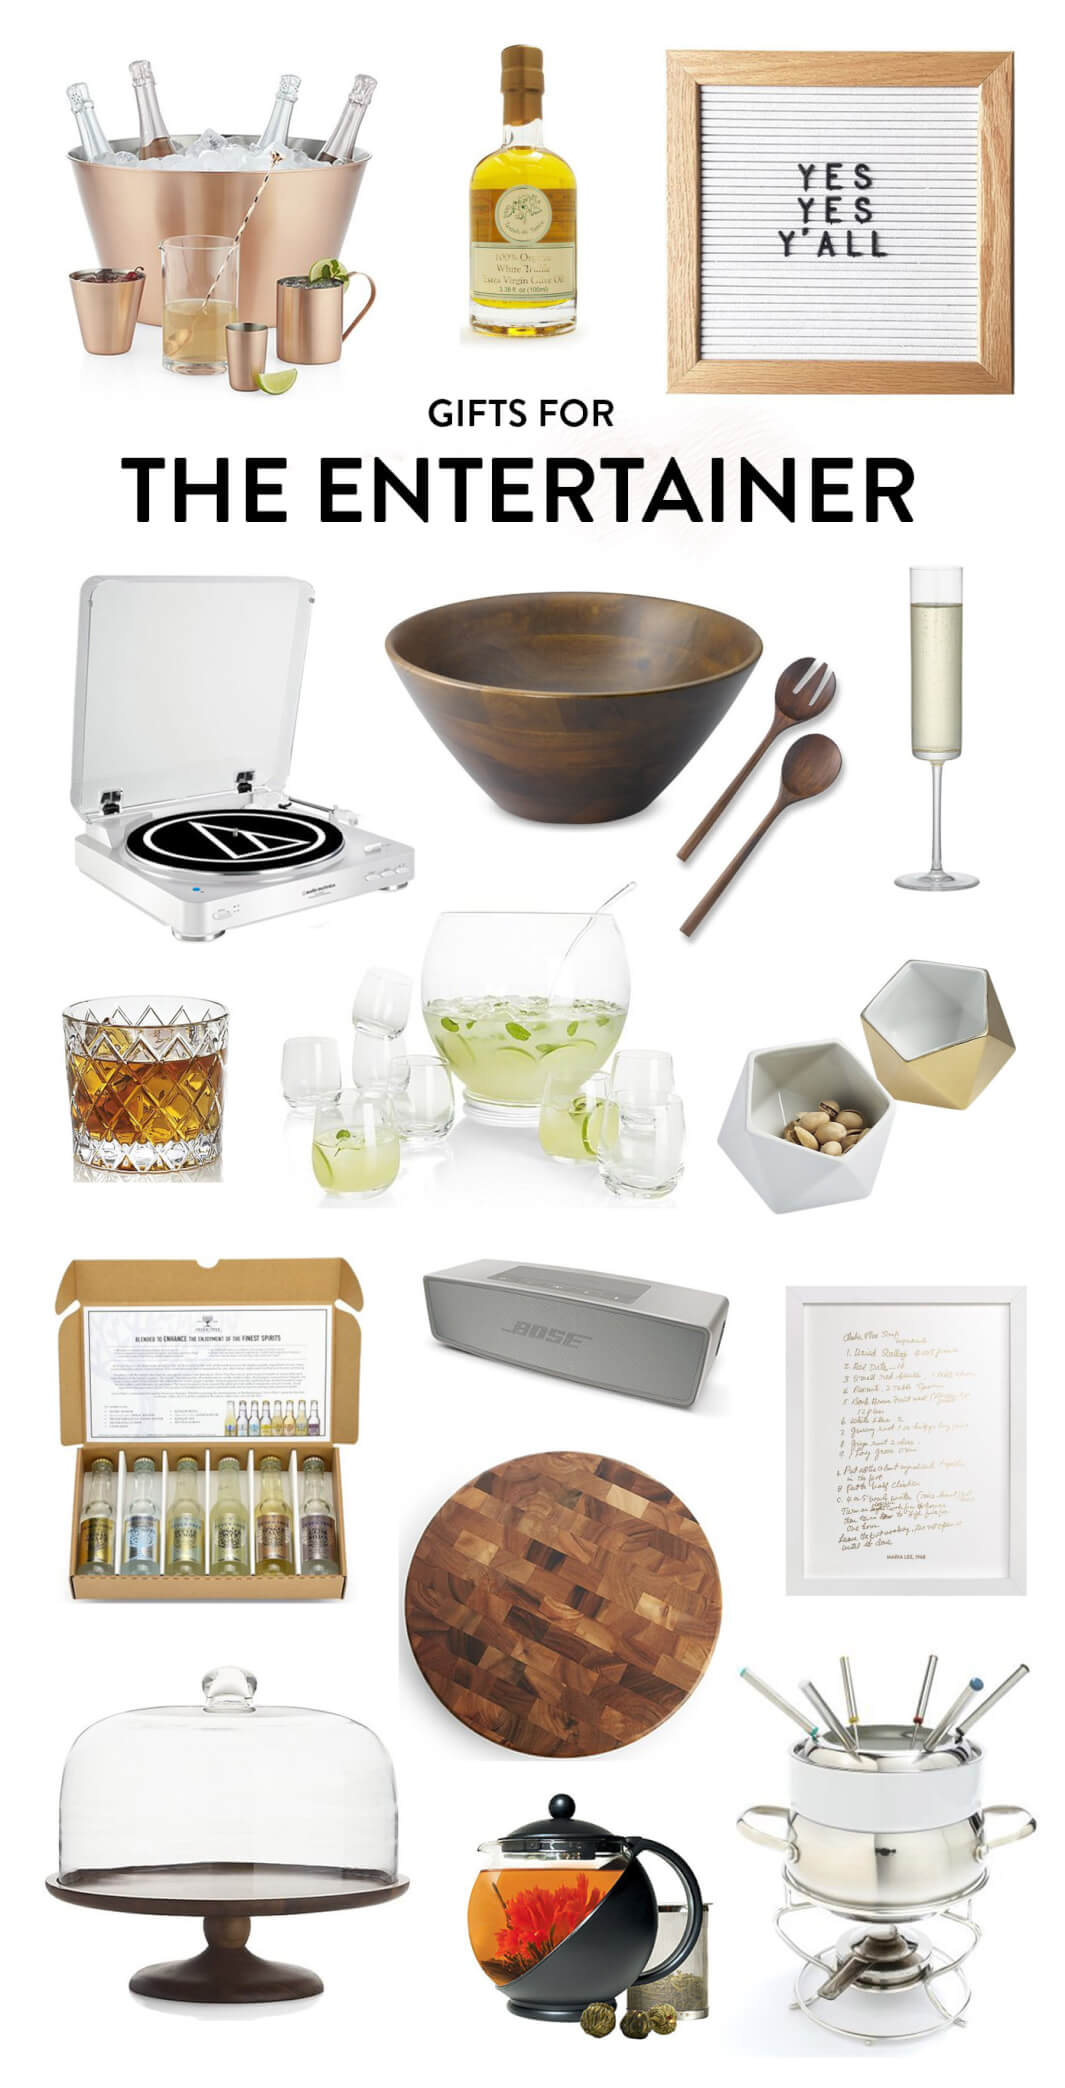 Perfect for the friend who loves to have people over! Holiday gifting ideas include everything from a letterboard to champagne flutes to a salad bowl and tons, serving bowls, punch bowl set, Bose bluetooth speaker, cutting board, fondue set, tea pot, wooden pedestal, tonic set, record player and champagne chilling bowl. | The Entertainer Gift Guide | Gimme Some Oven Holidays 2017